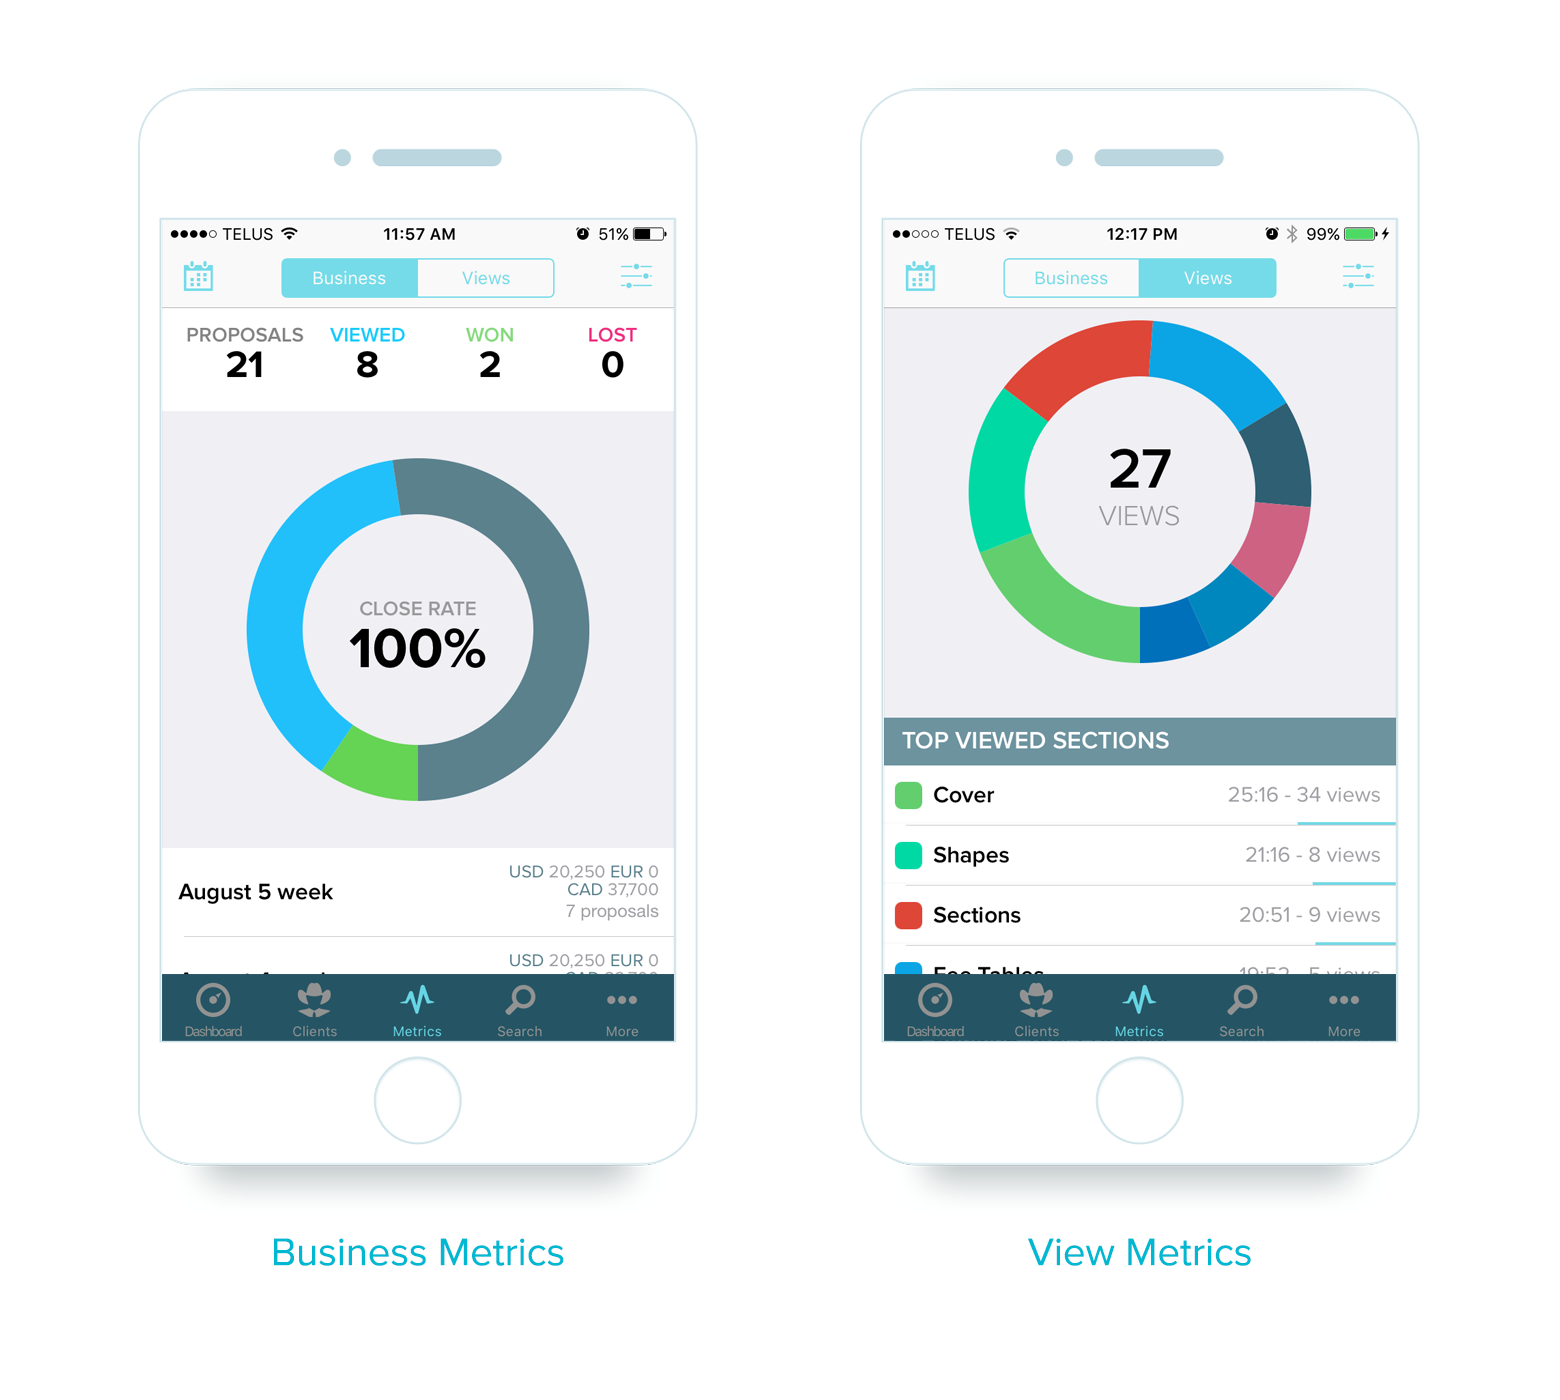 Business & View Metrics